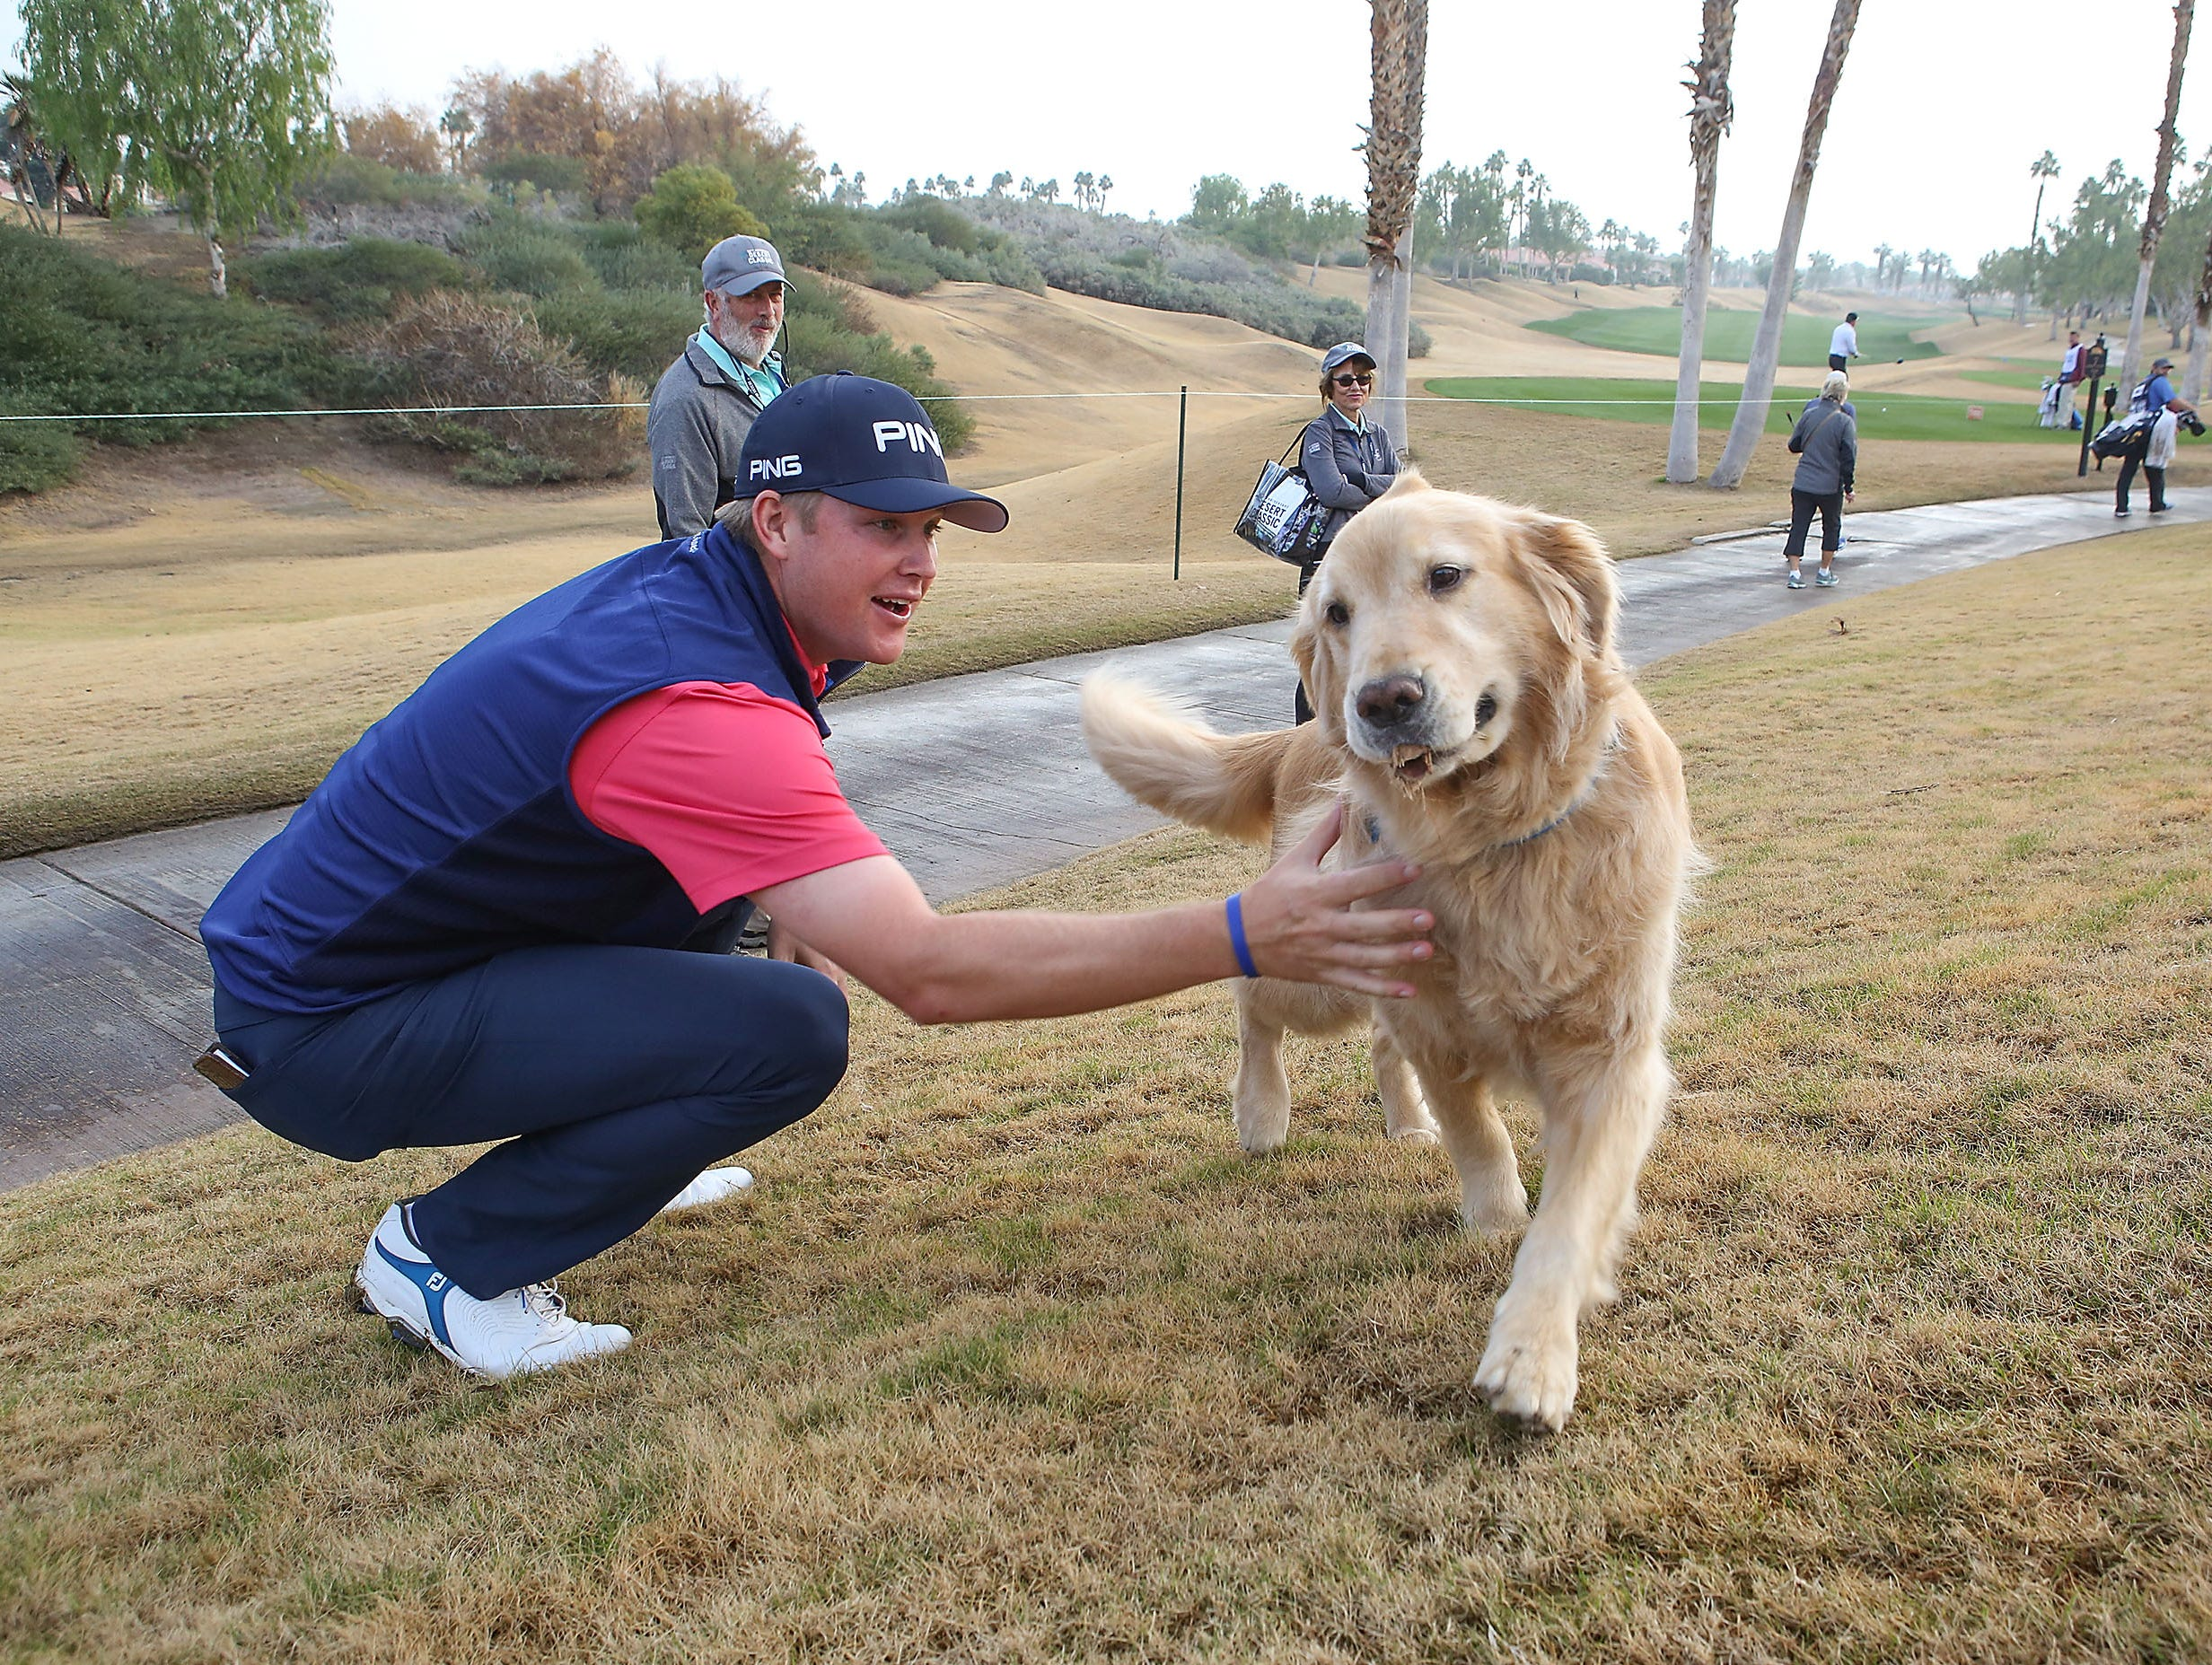 Trey Mullinax meets a friendly dog named Beauregard before teeing off on the 7th hole of the Nicklaus Tournament Course at PGA West, January 17, 2019.